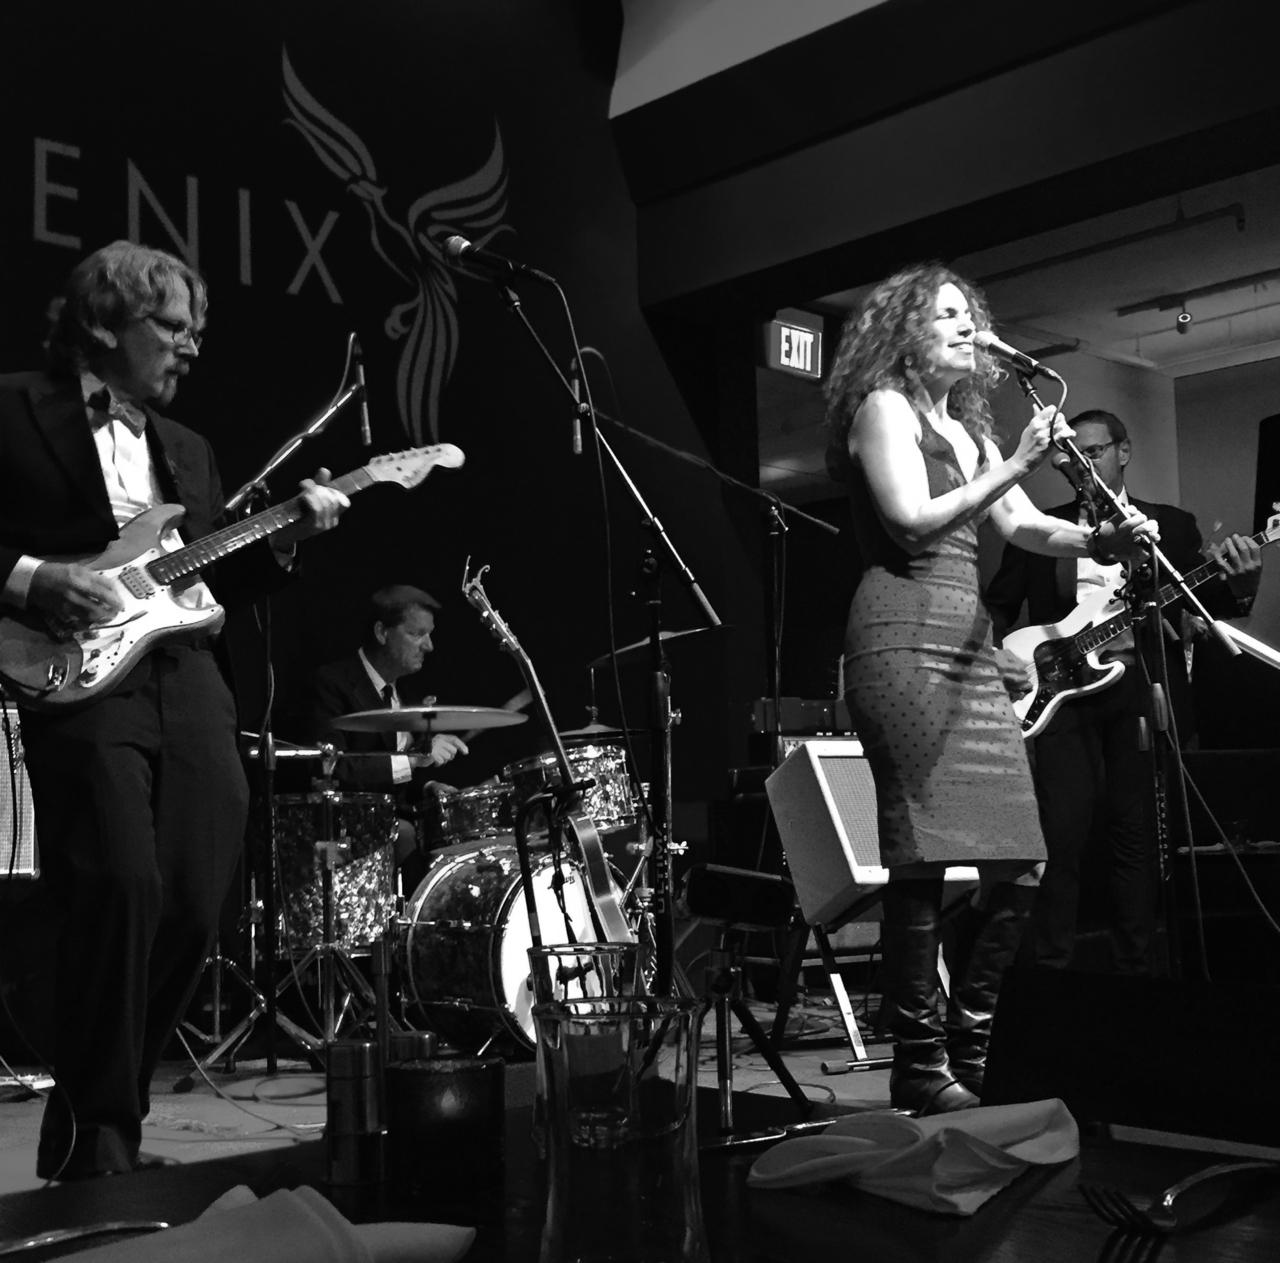 Cherie Lebow plays The Fenix.